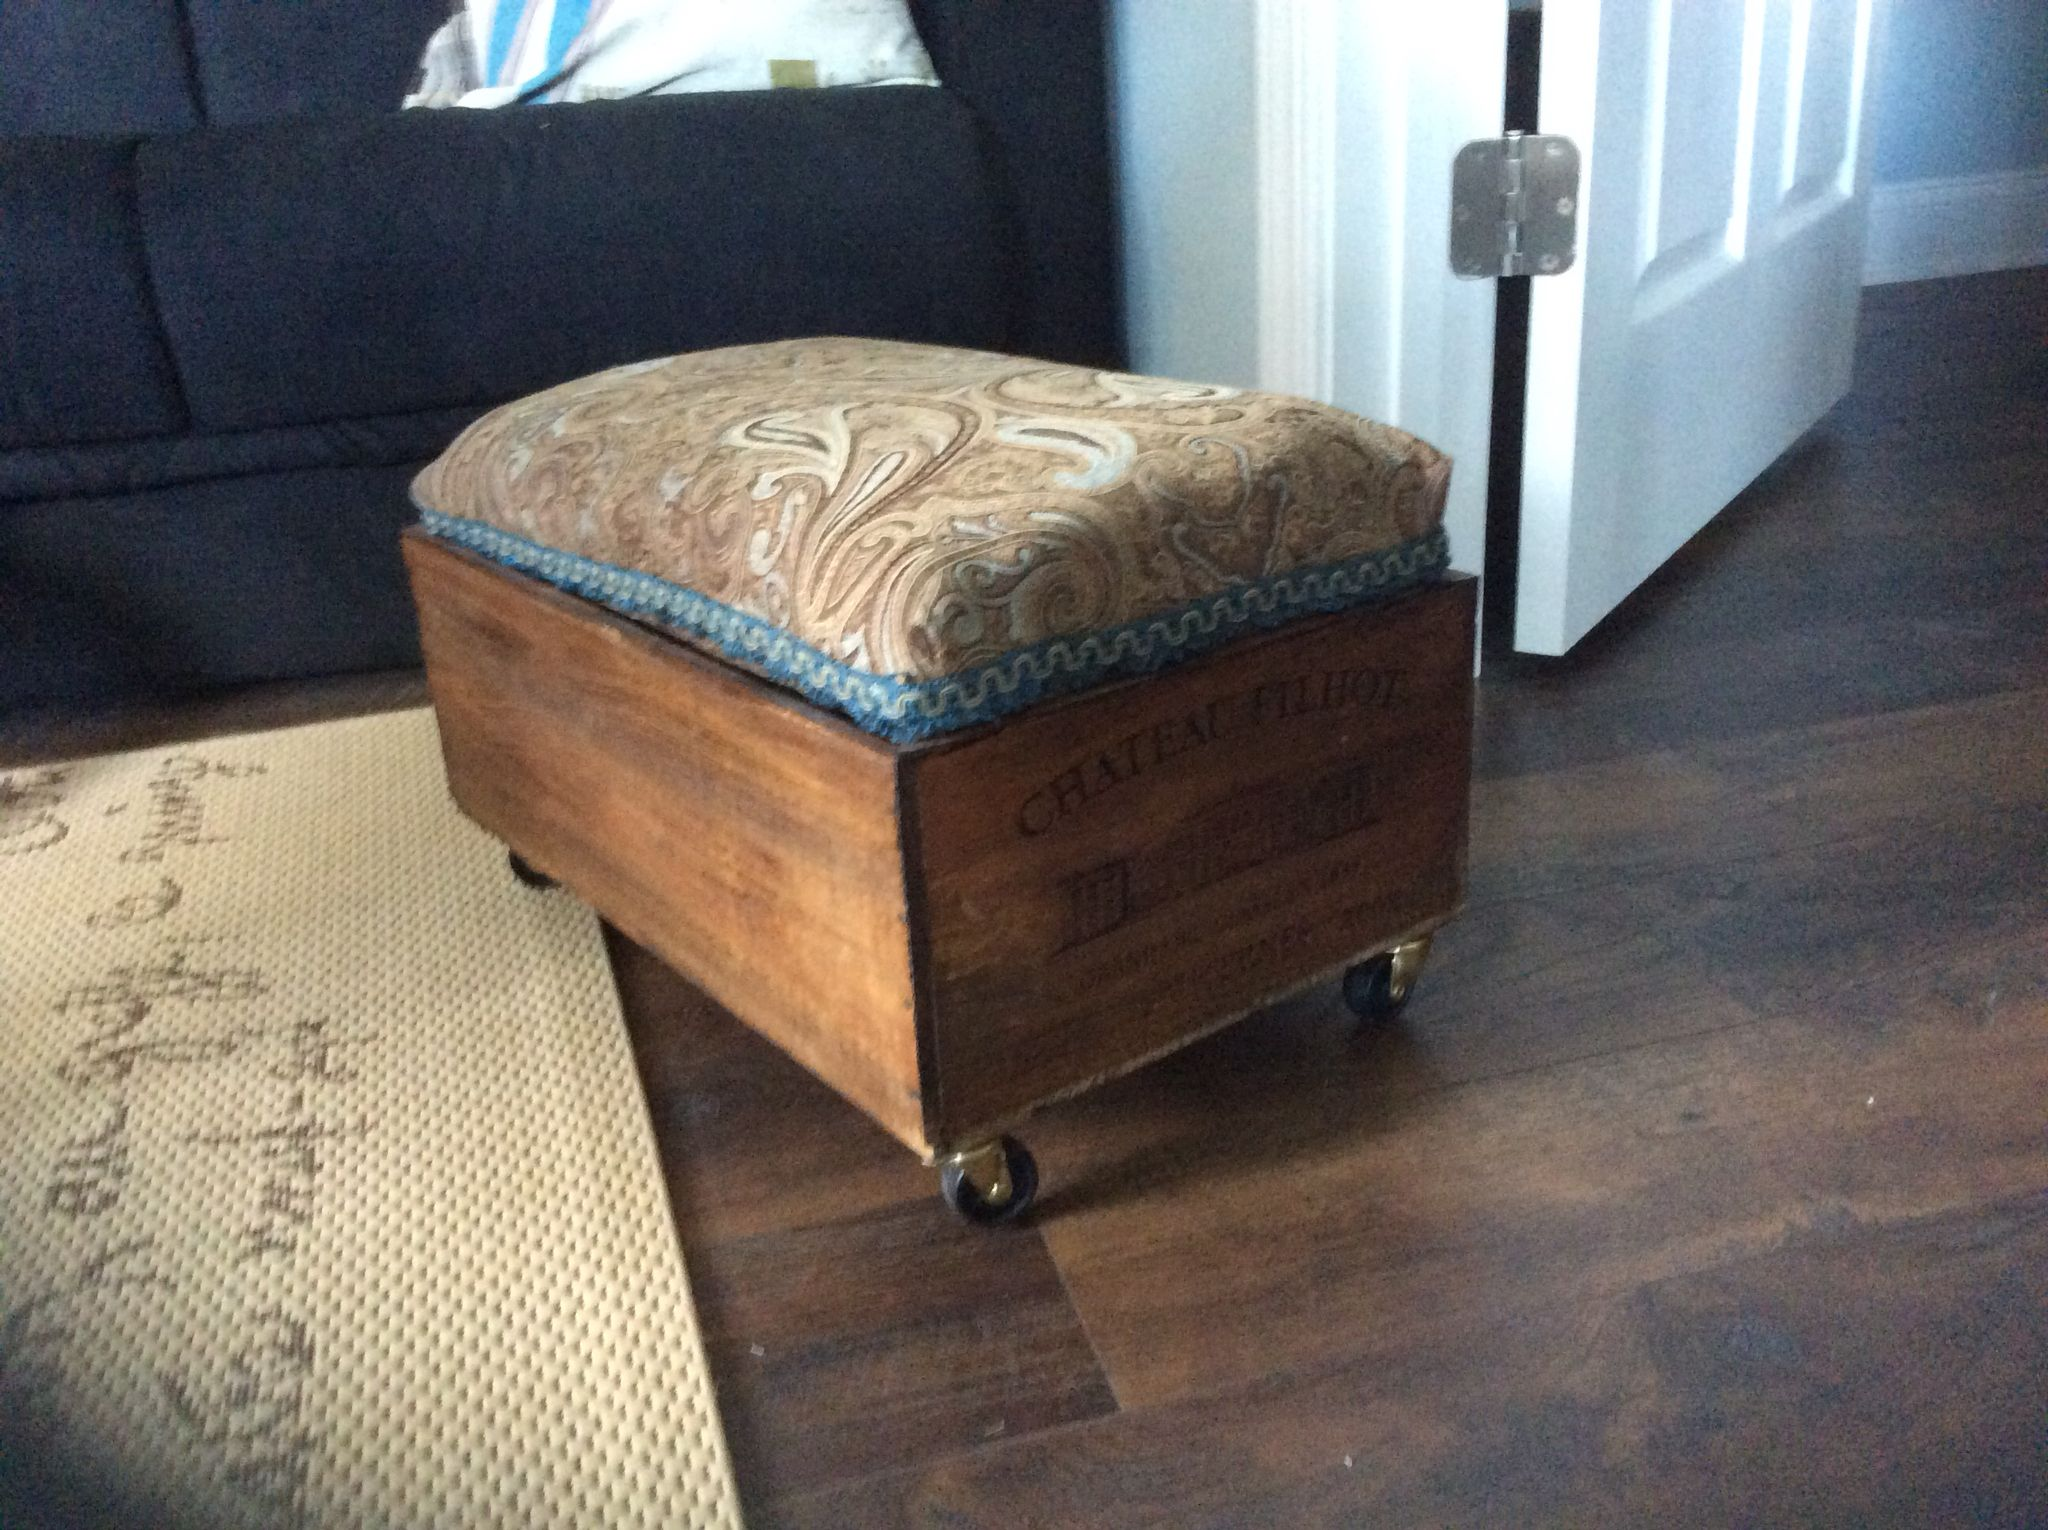 Wine crate that I added castors and an upholstered top to. Top can be removed for storage.